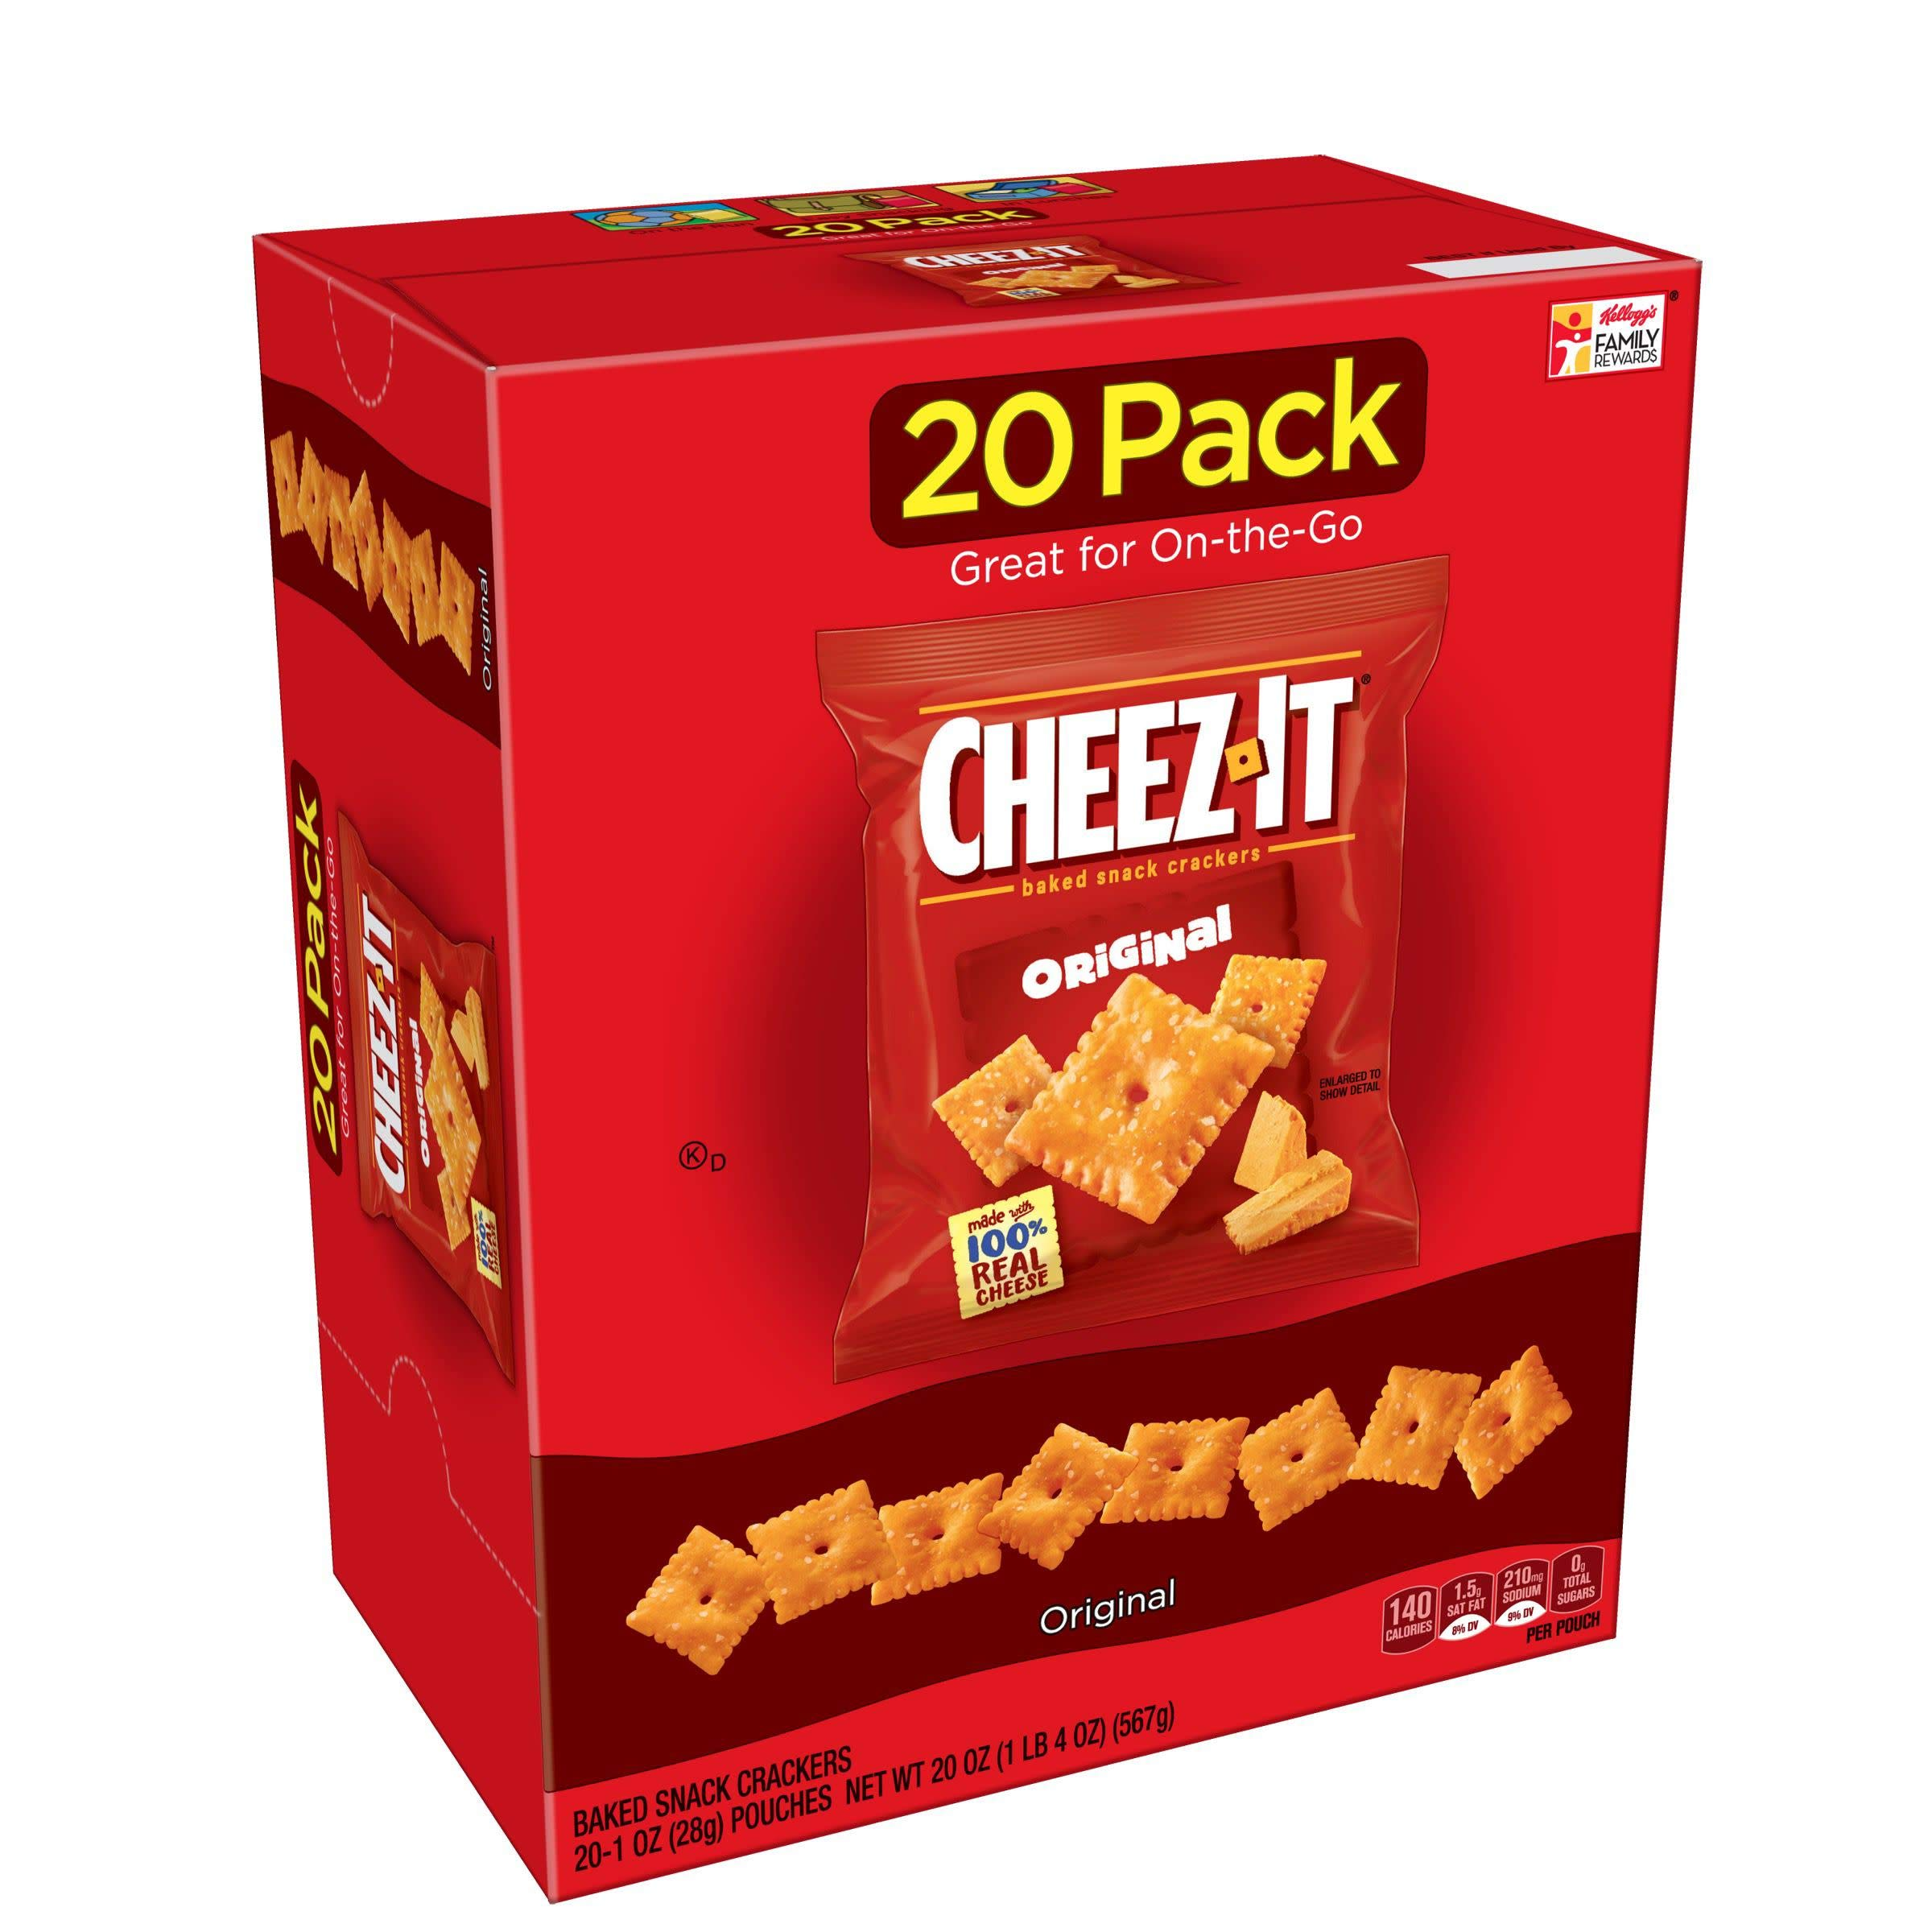 Cheez-It Baked Snack Cheese Crackers, Original, Single Serve, 1 oz Bags(20 Count)